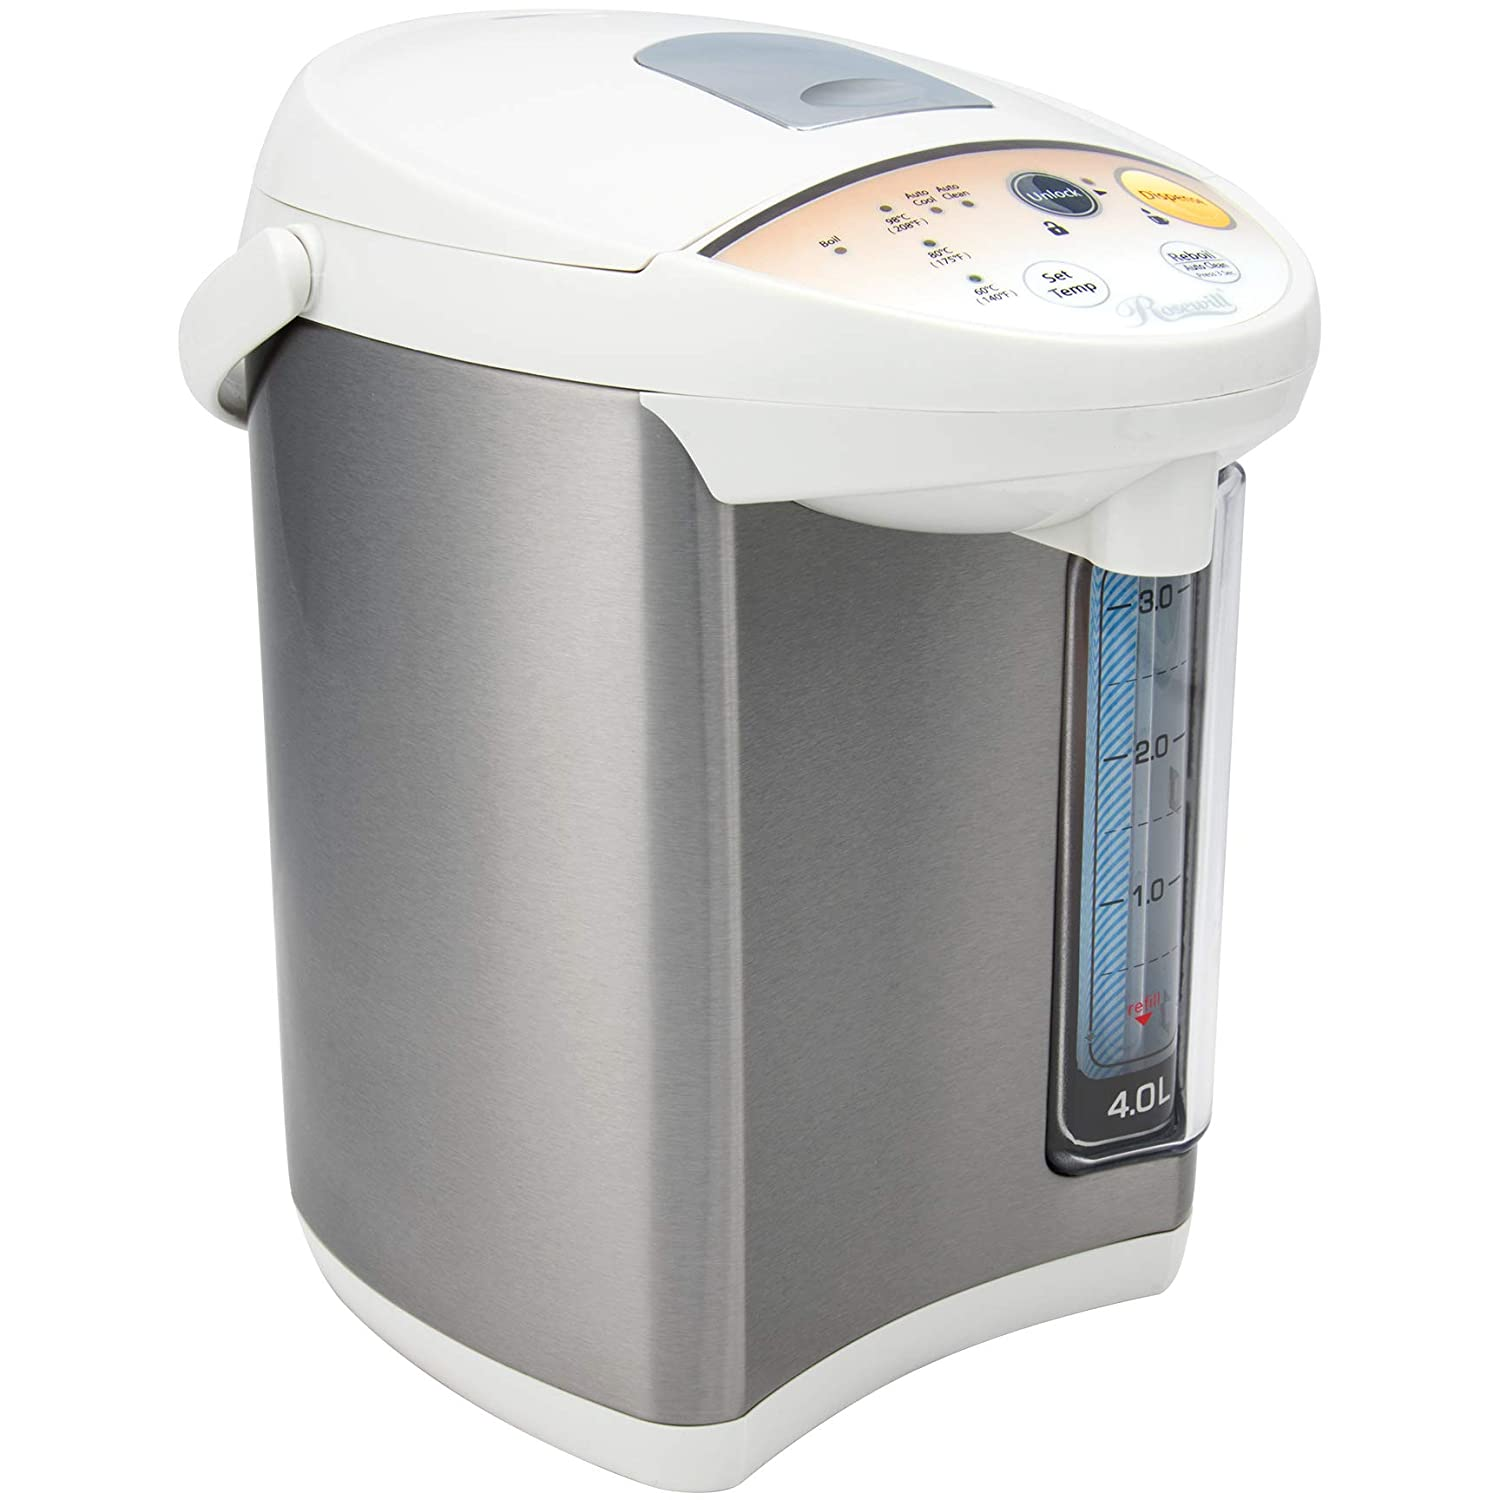 Rosewill RHAP-16001-1 Gallon Electric Water Warmer, Boiler and Dispenser (4.0 L)